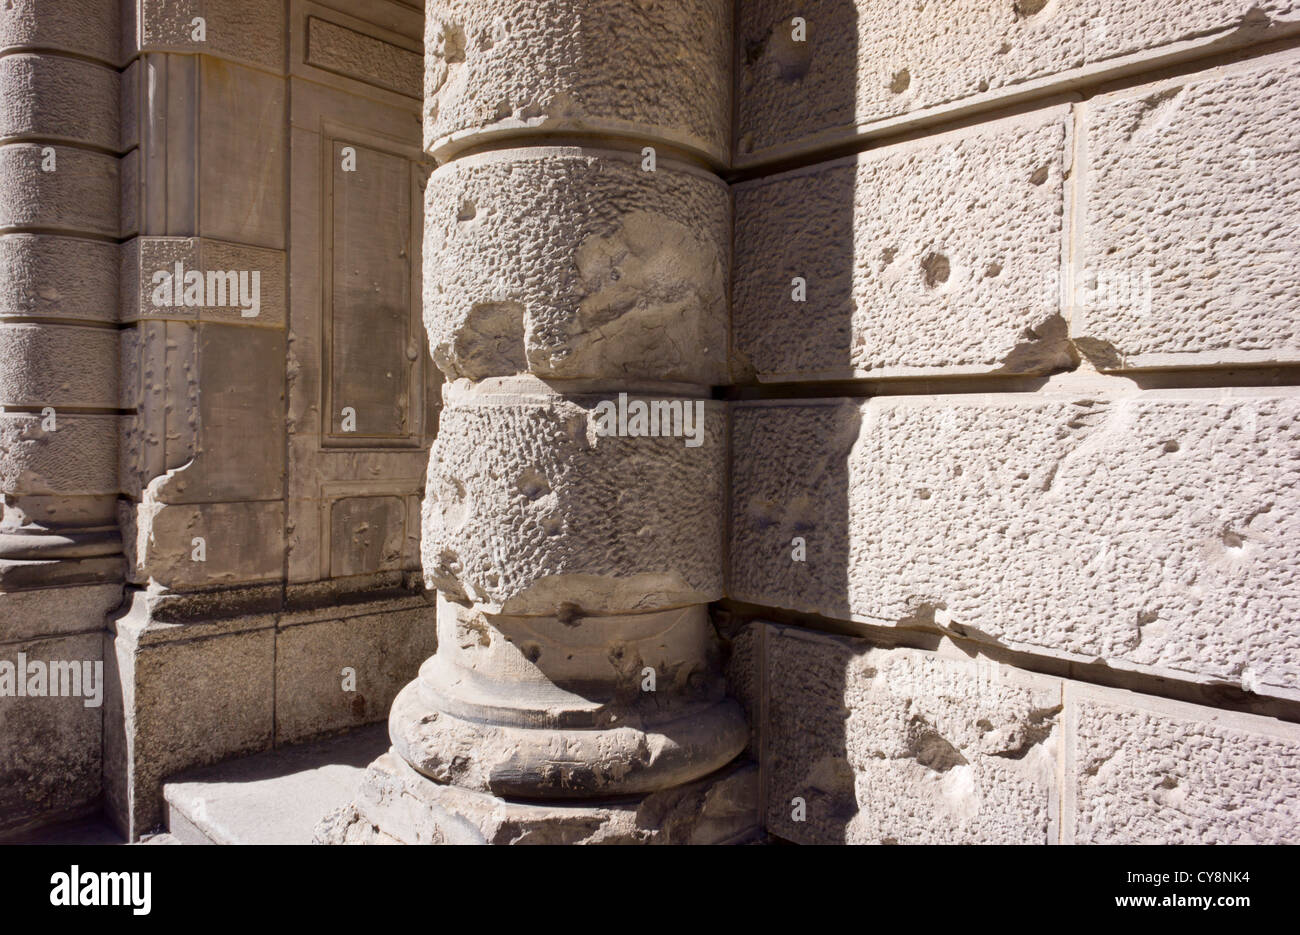 Bullet ridden wall on an old building in Berlin, Germany. - Stock Image